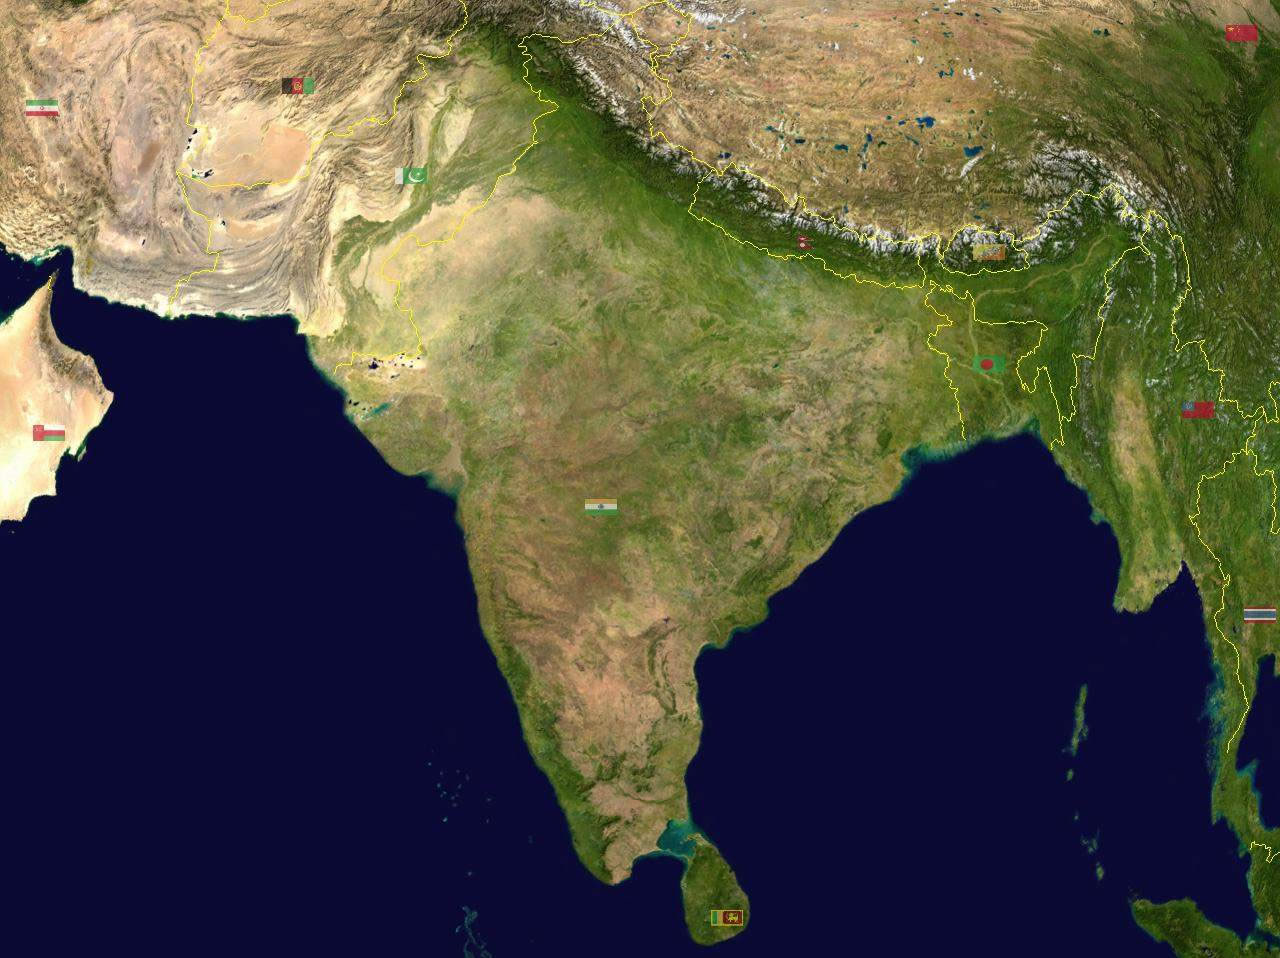 Setelight Map Of India.India Satellite Map Maps Of India